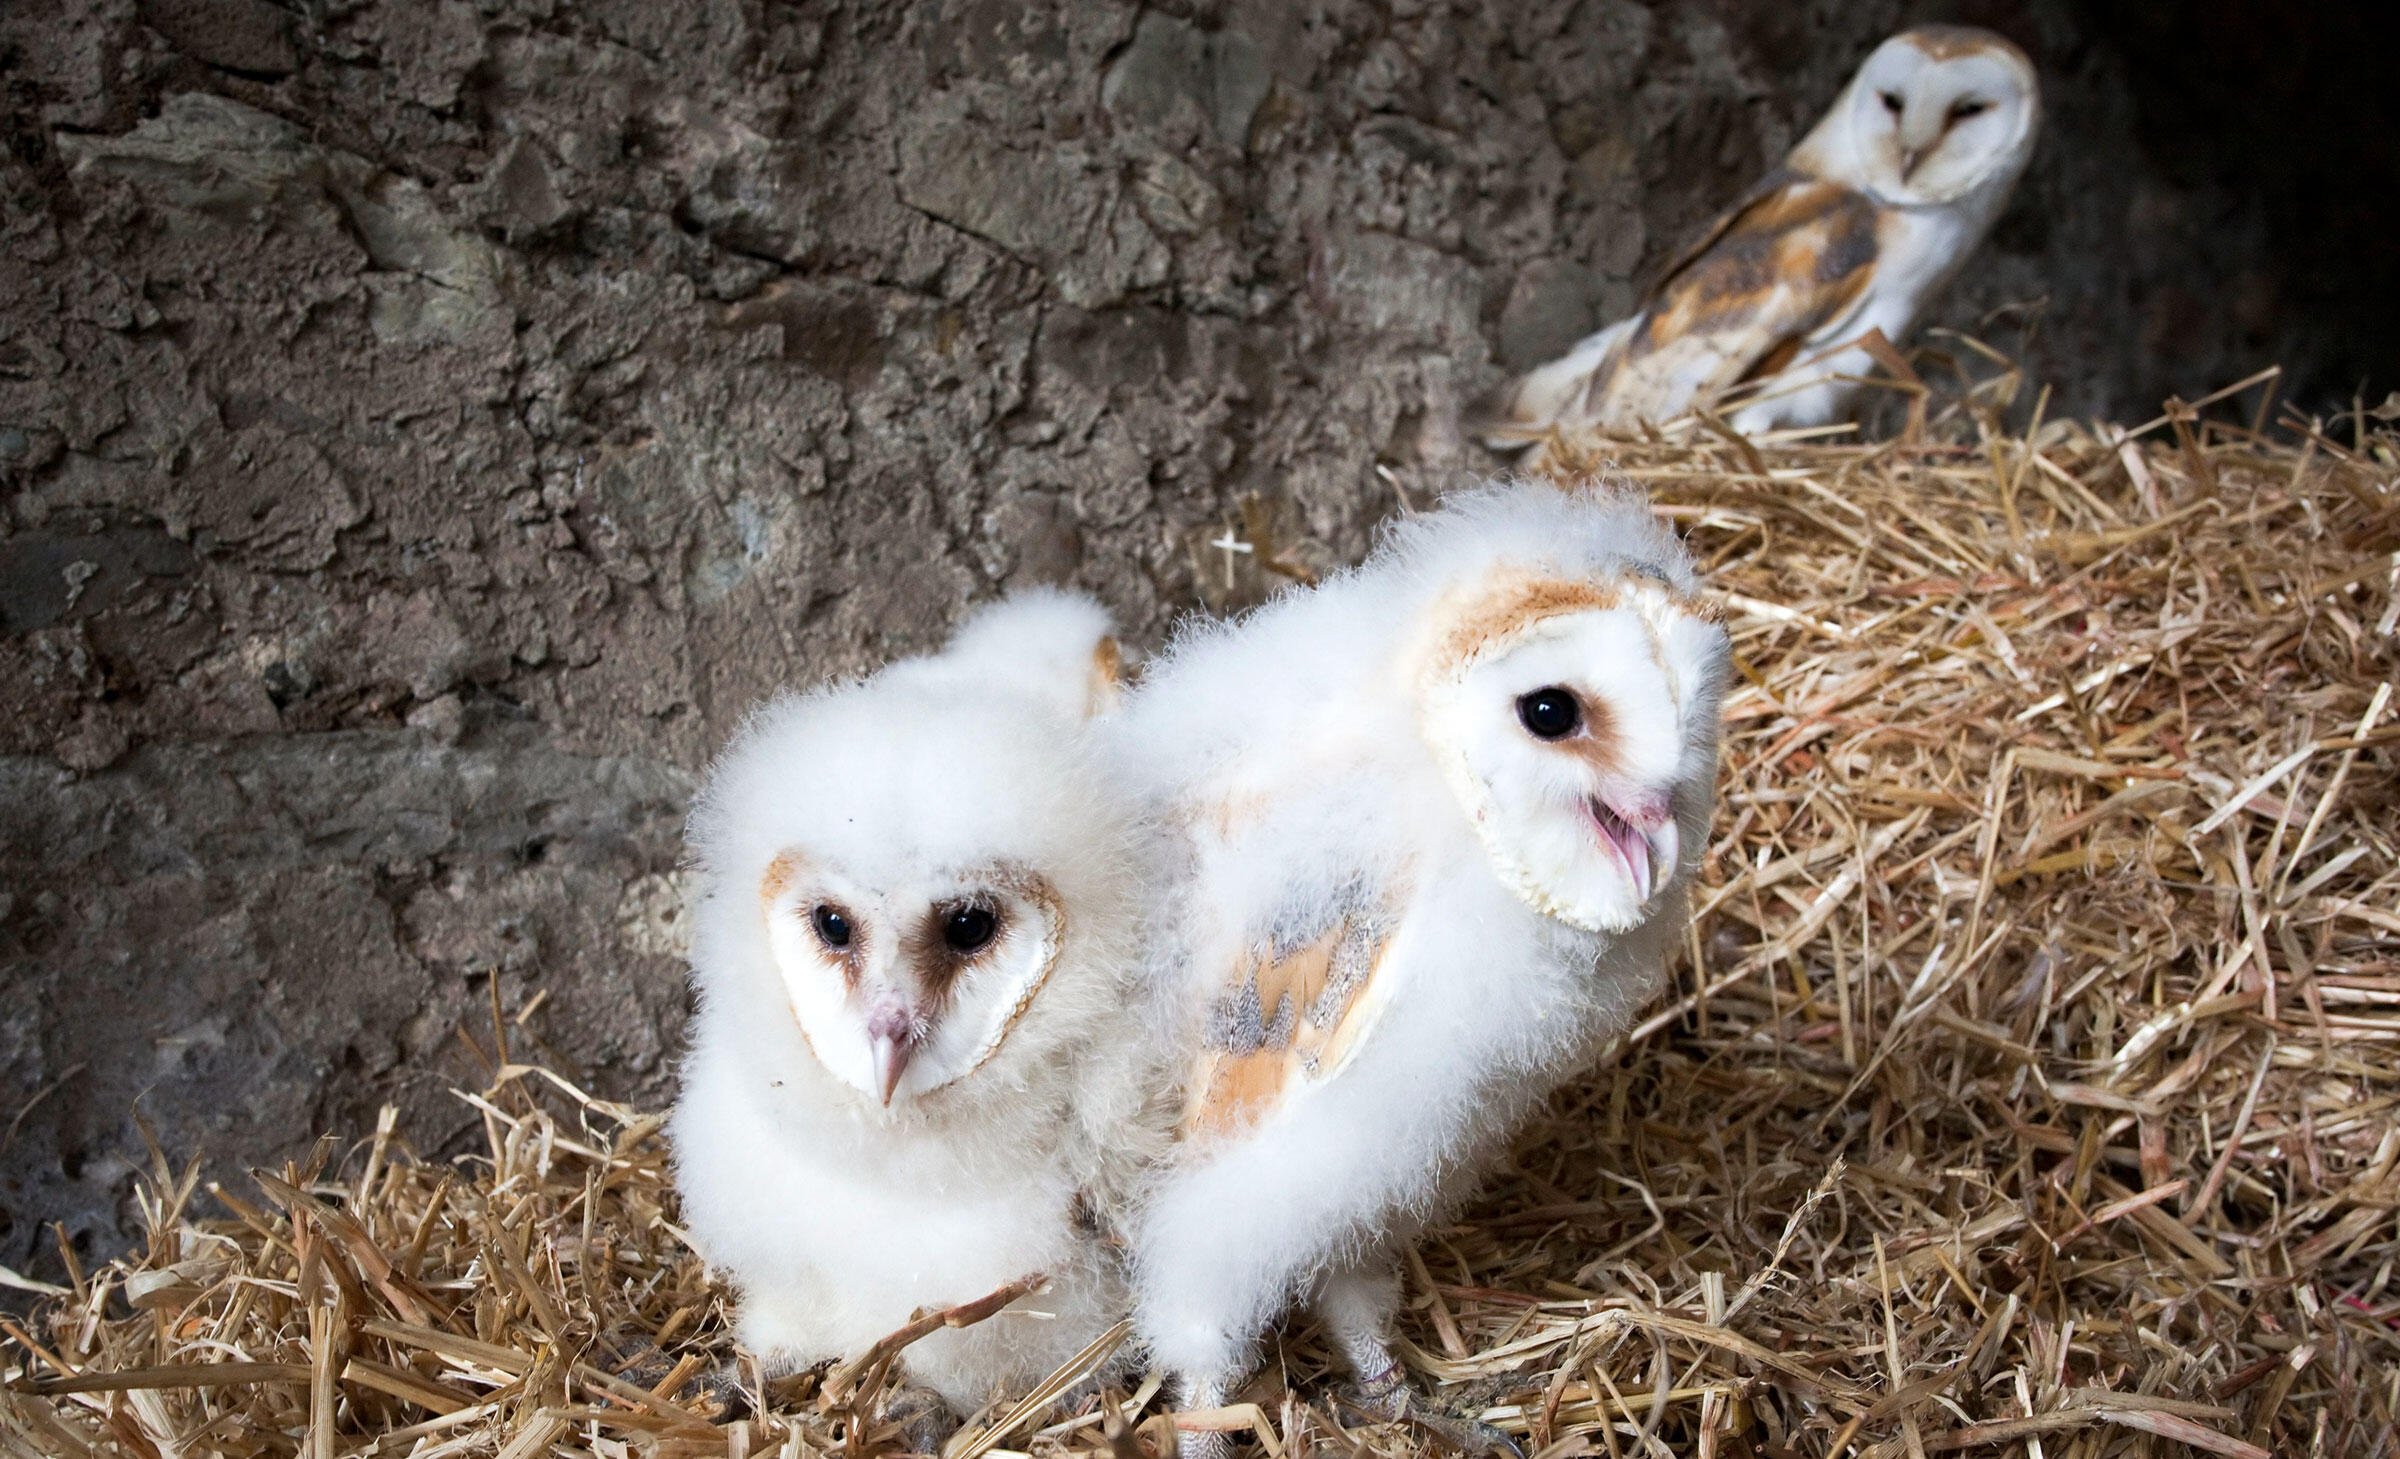 Family Ties Barn Owl Chicks Let Their Hungry Siblings Eat